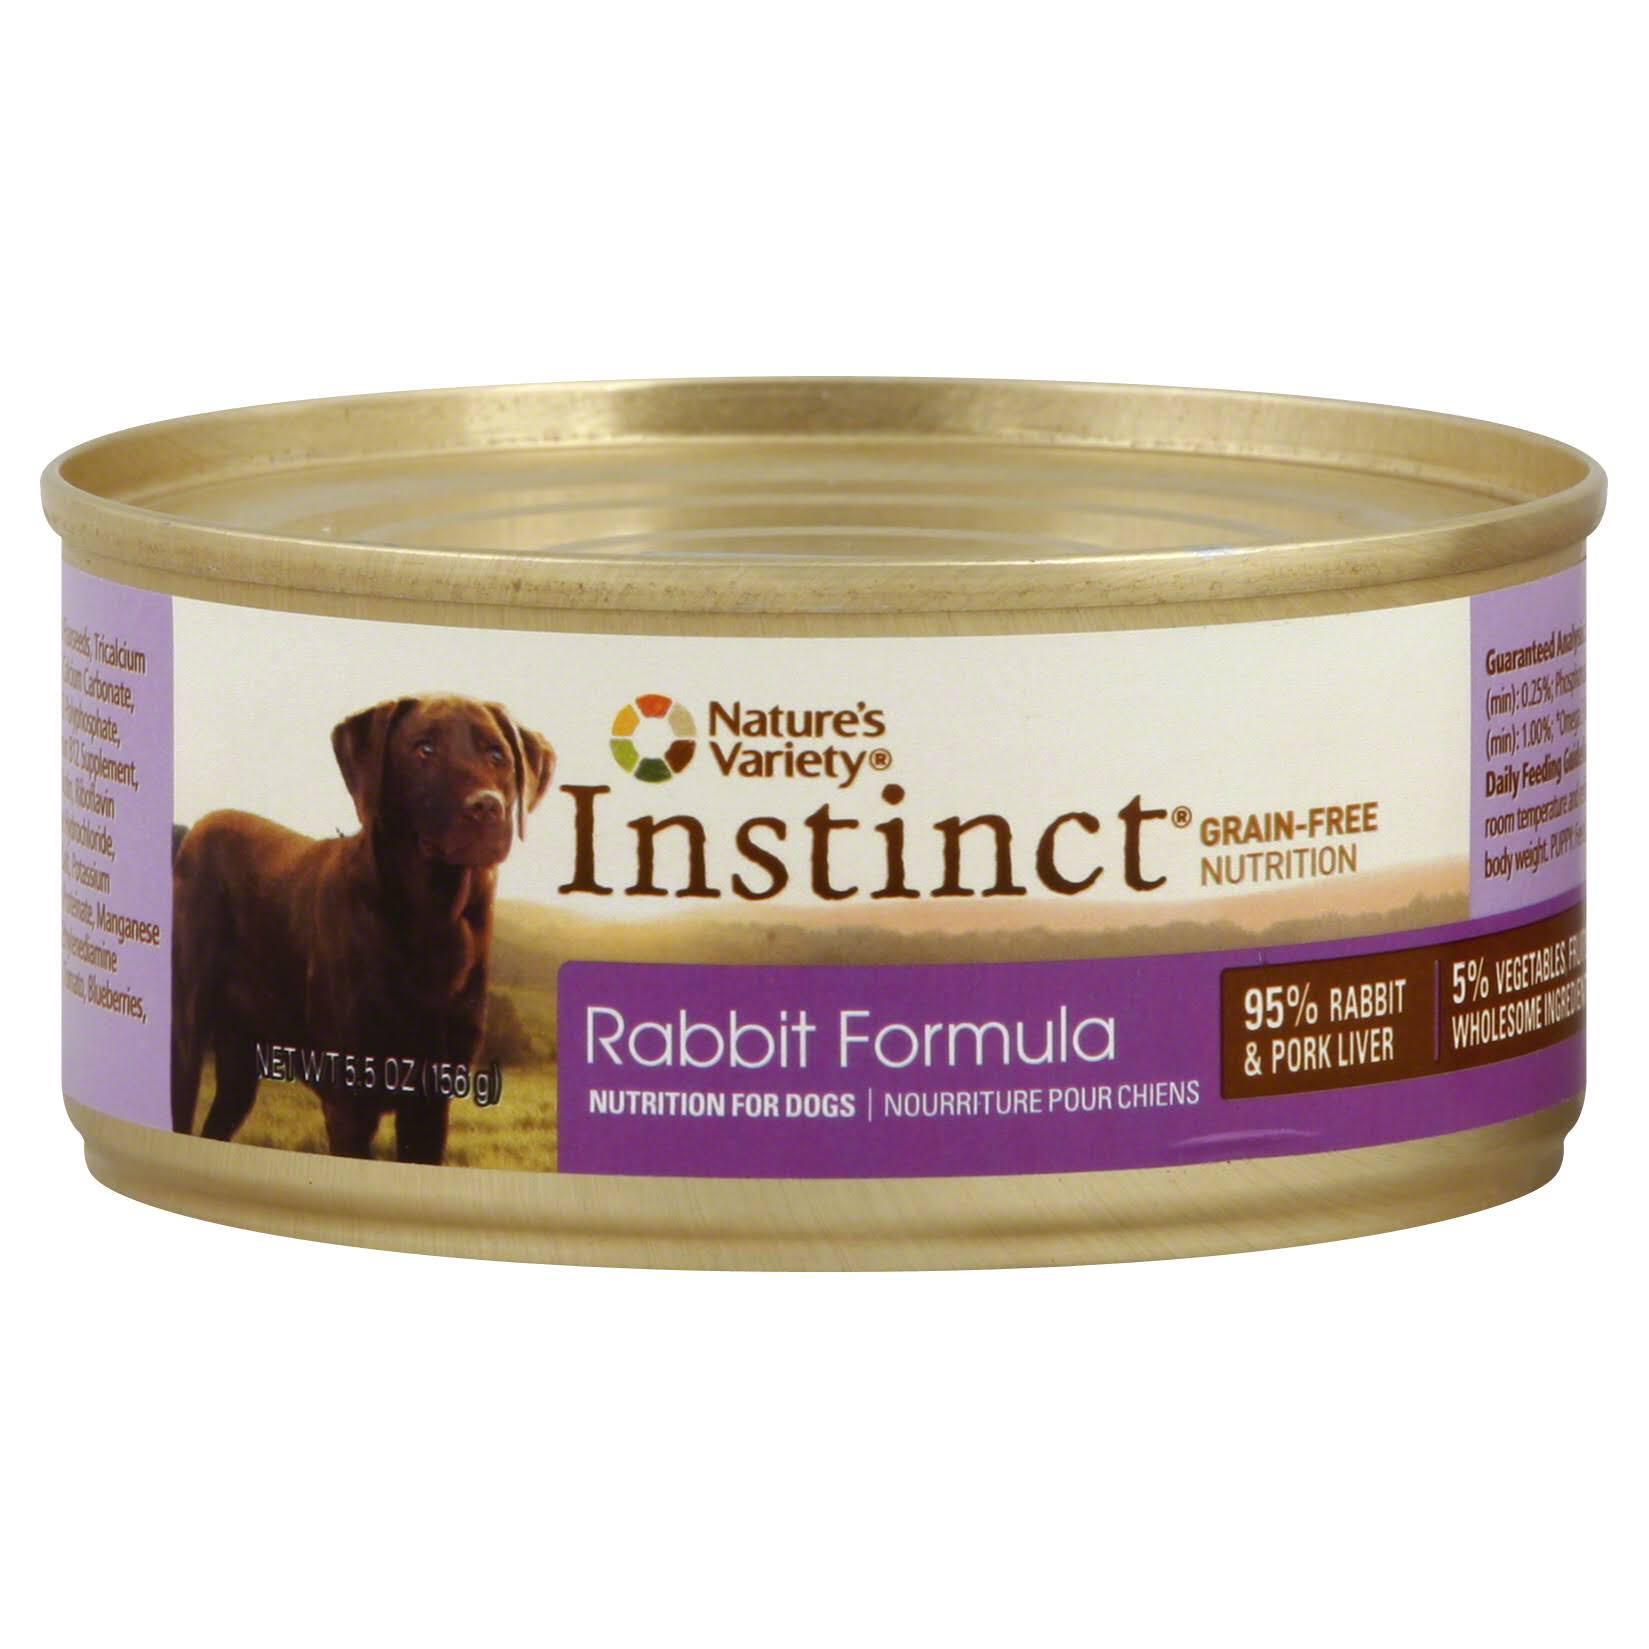 Nature's Variety Instinct Grain-Free Rabbit Canned Dog Food - 5.5oz